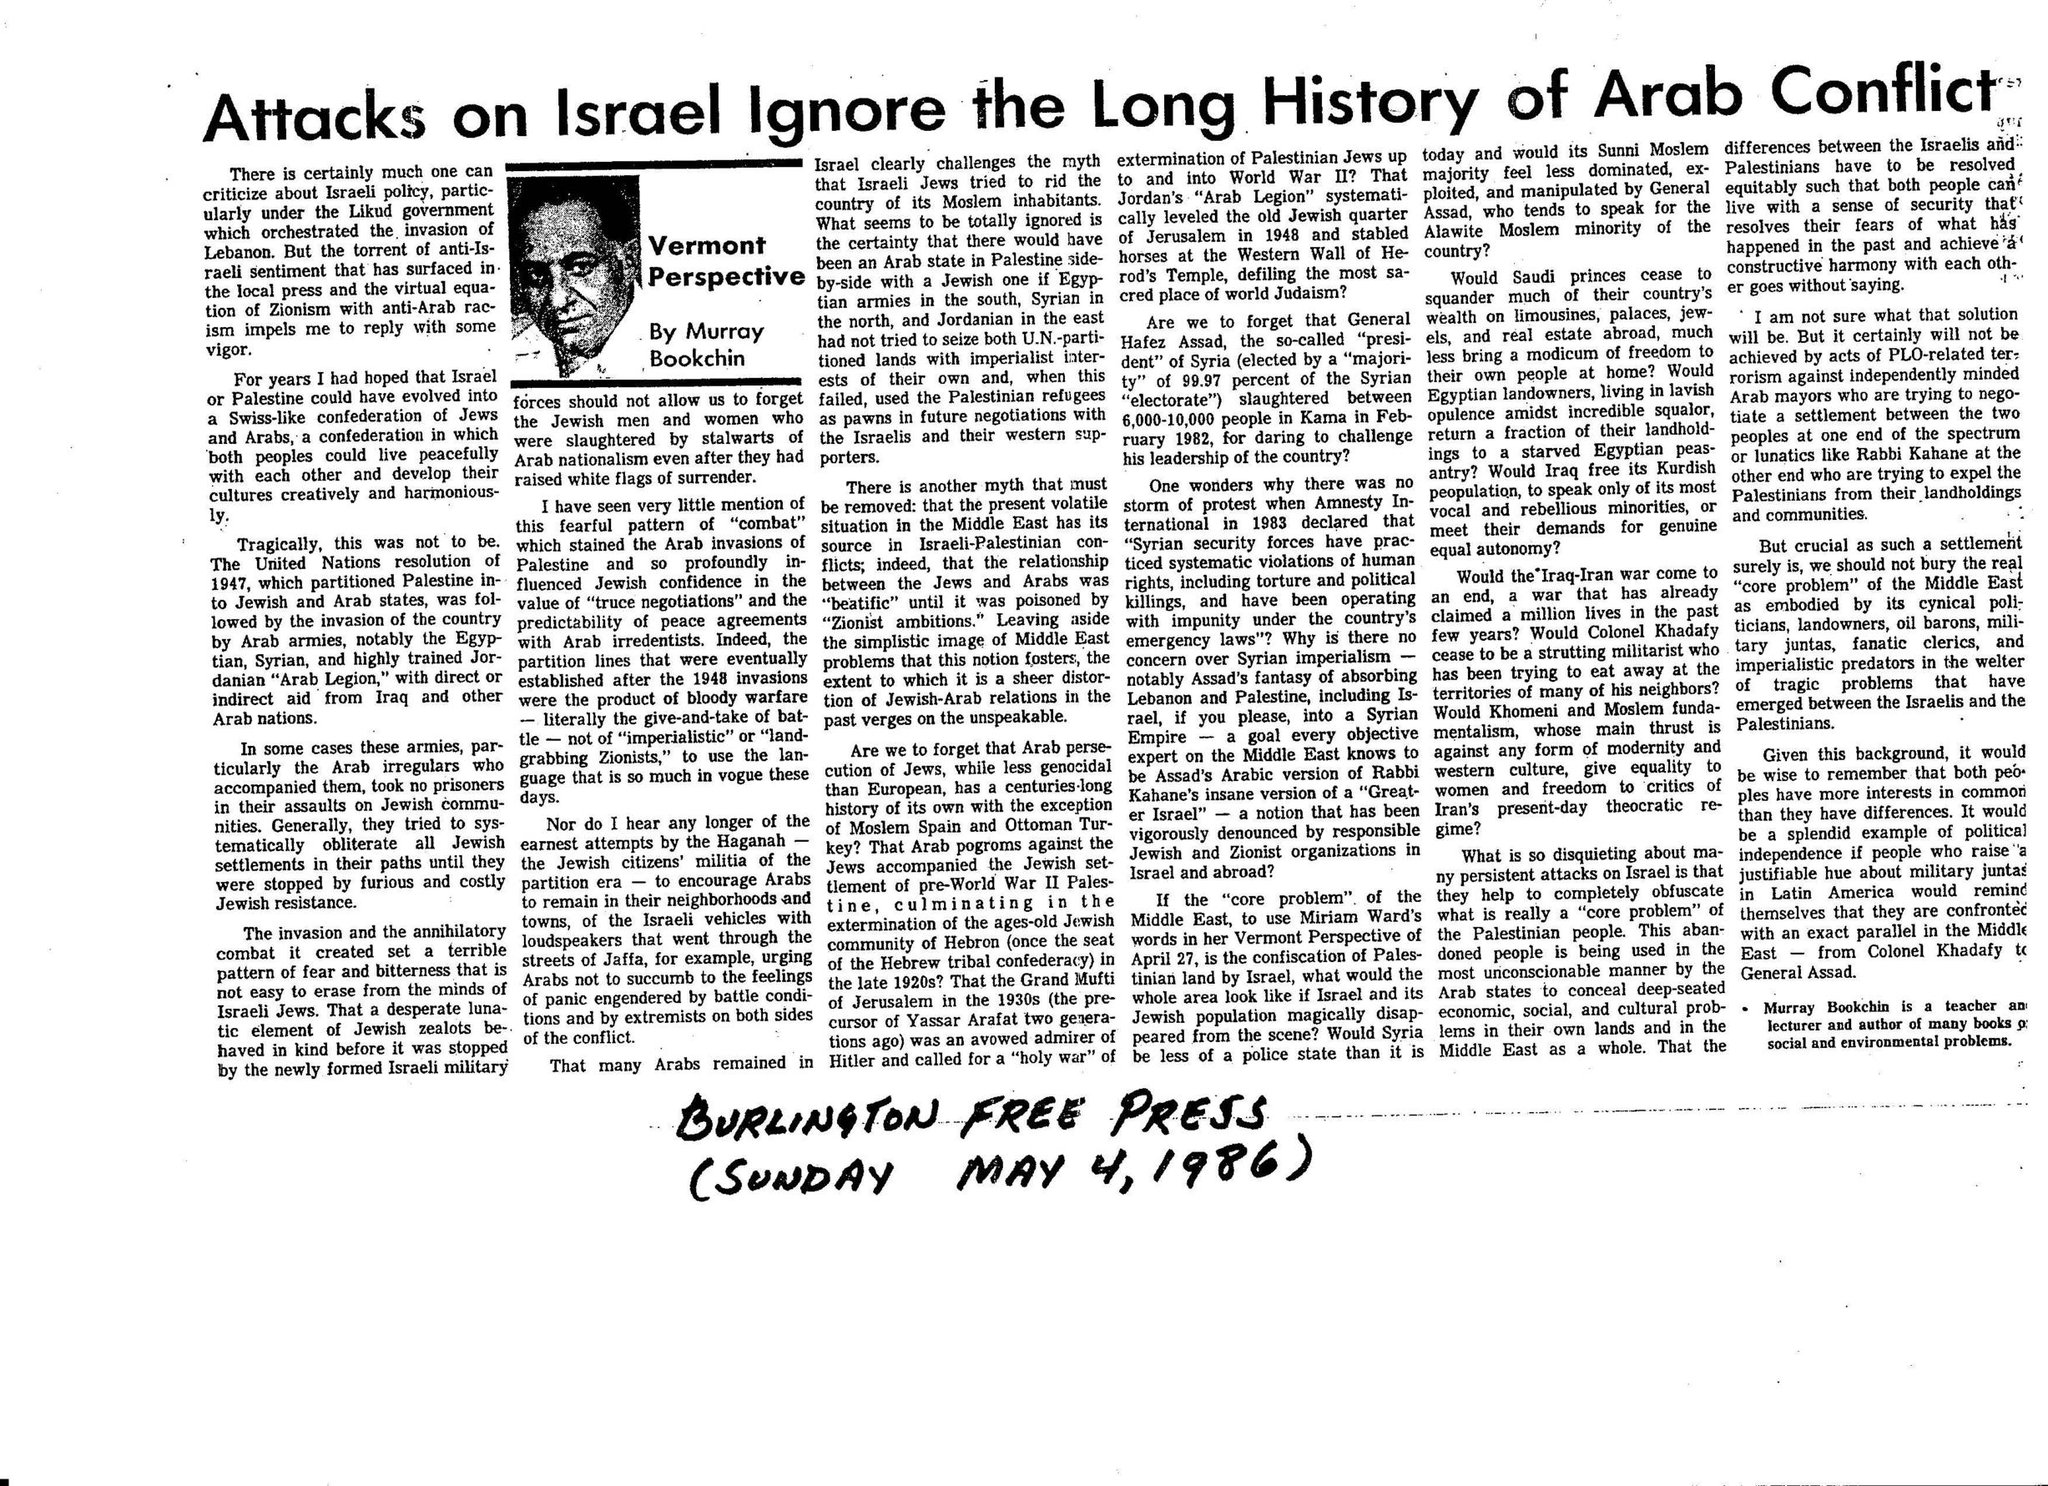 a history of the conflict between the arabs and the jews A brief history of the israeli-palestinian conflict the holy land changed hands many times through history -- from the canaanites to the israelites, babylonians, romans, crusaders, arabs, ottoman turks, british, and so on.